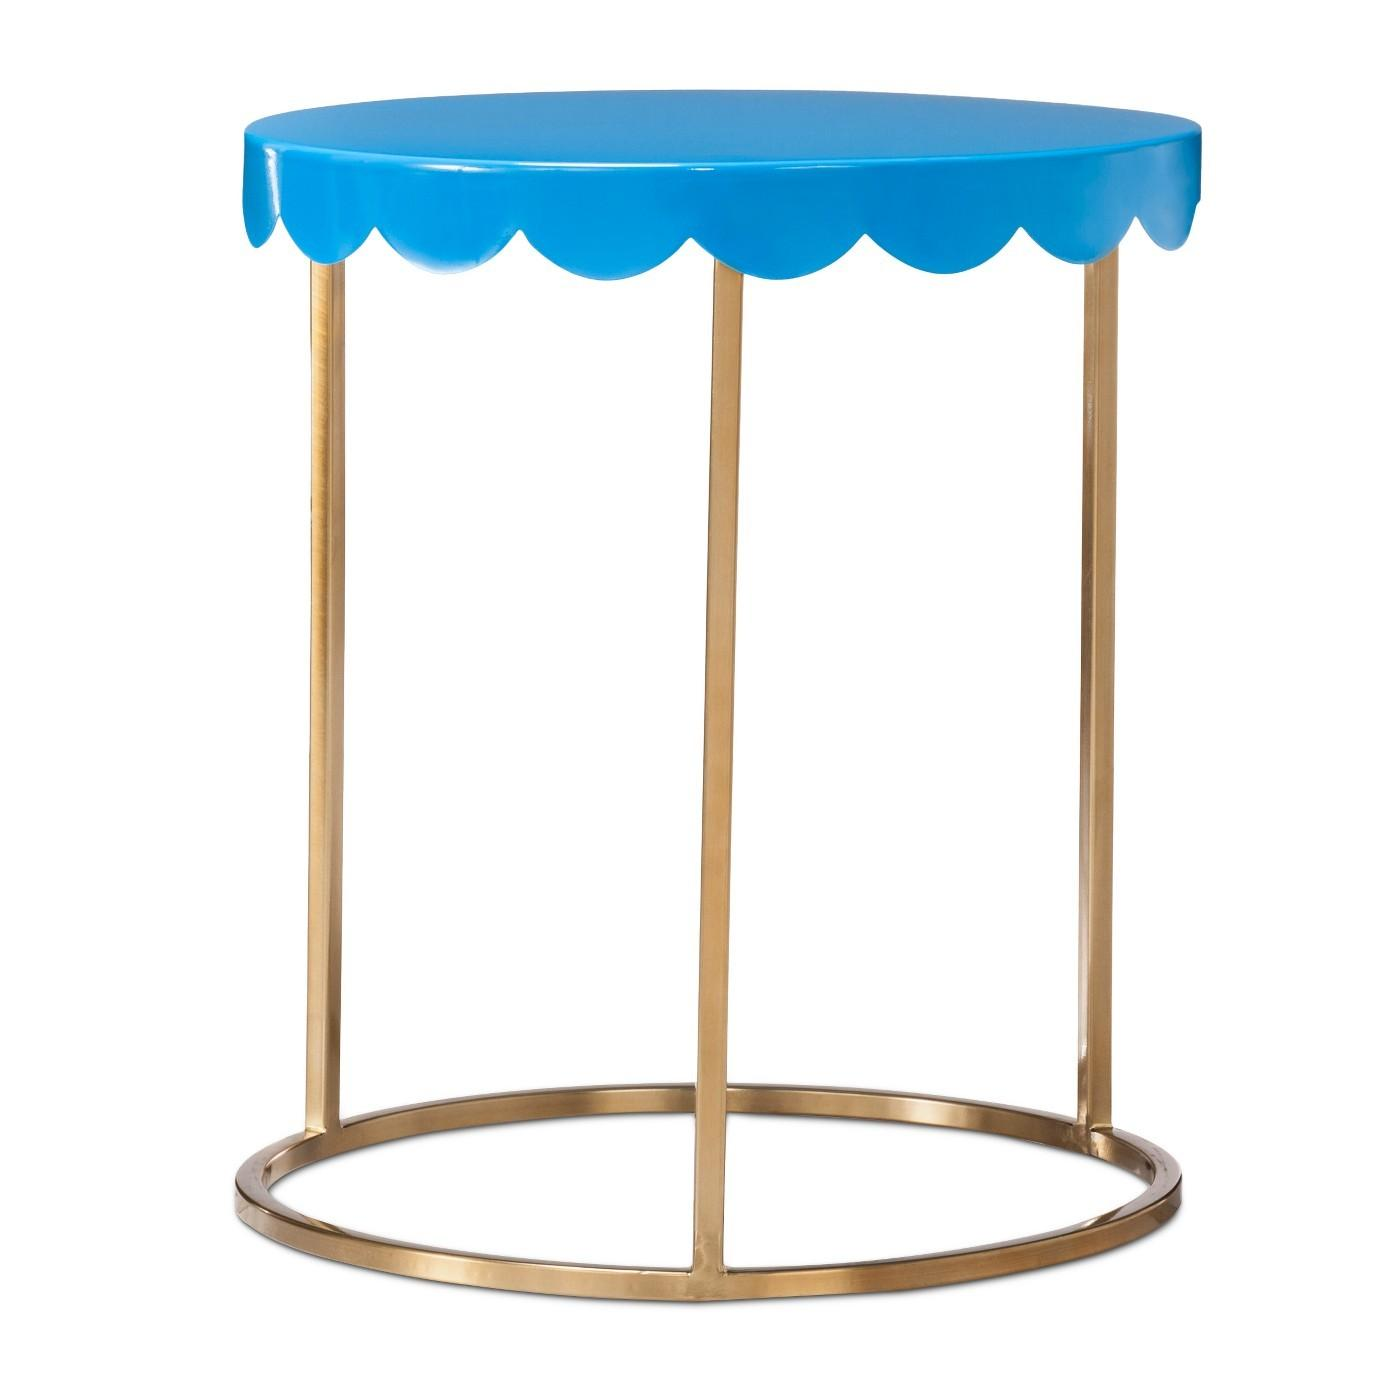 target pillowfort kids accent table side night stand attach aqua blue vivid countertops round outdoor glass top office computer desk inch nightstand best furniture brown wicker